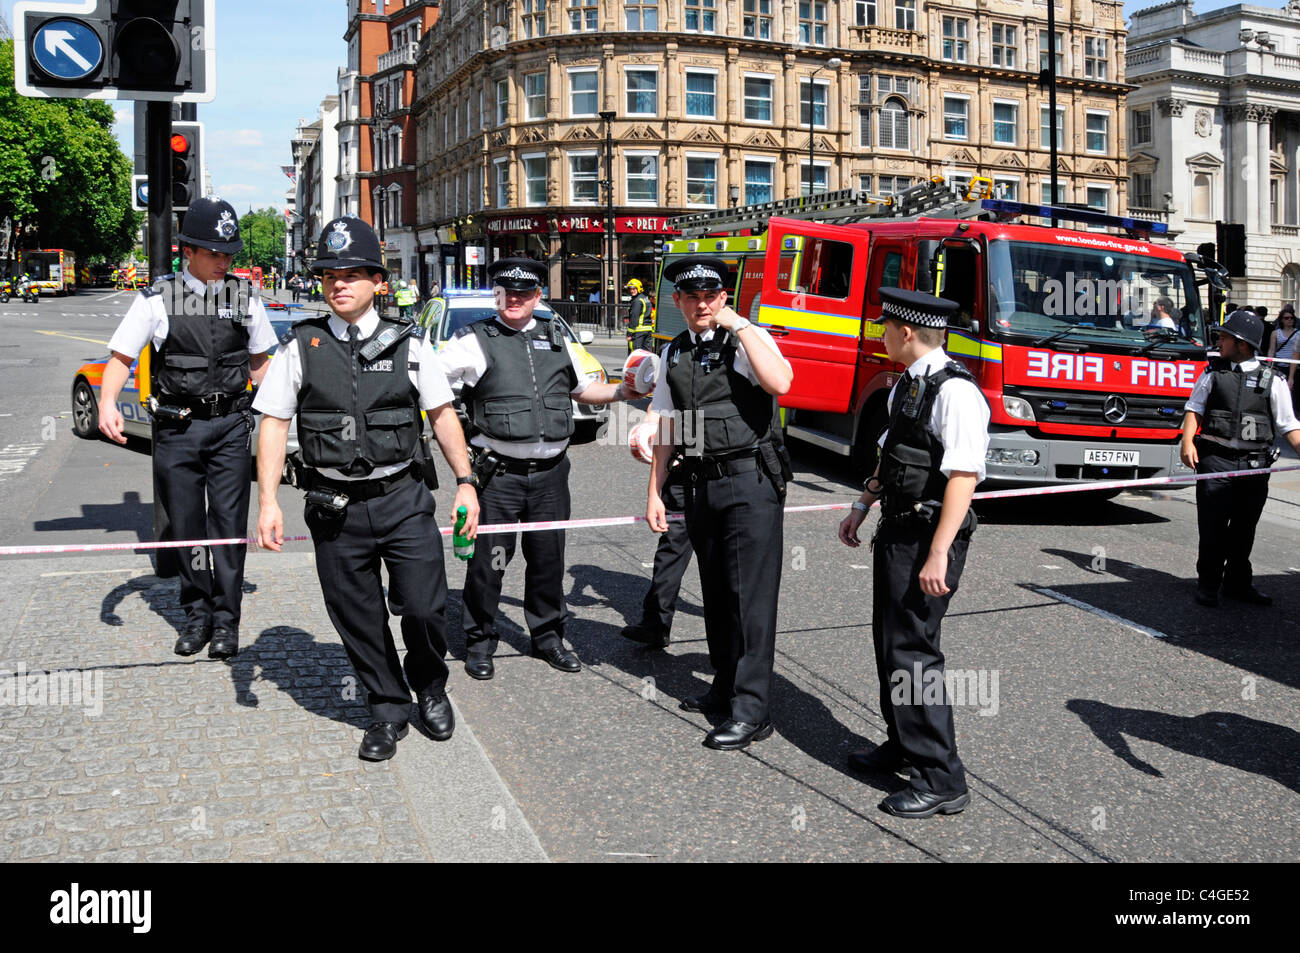 Police officers about to clear public from scene of major fire at Marconi House London - Stock Image